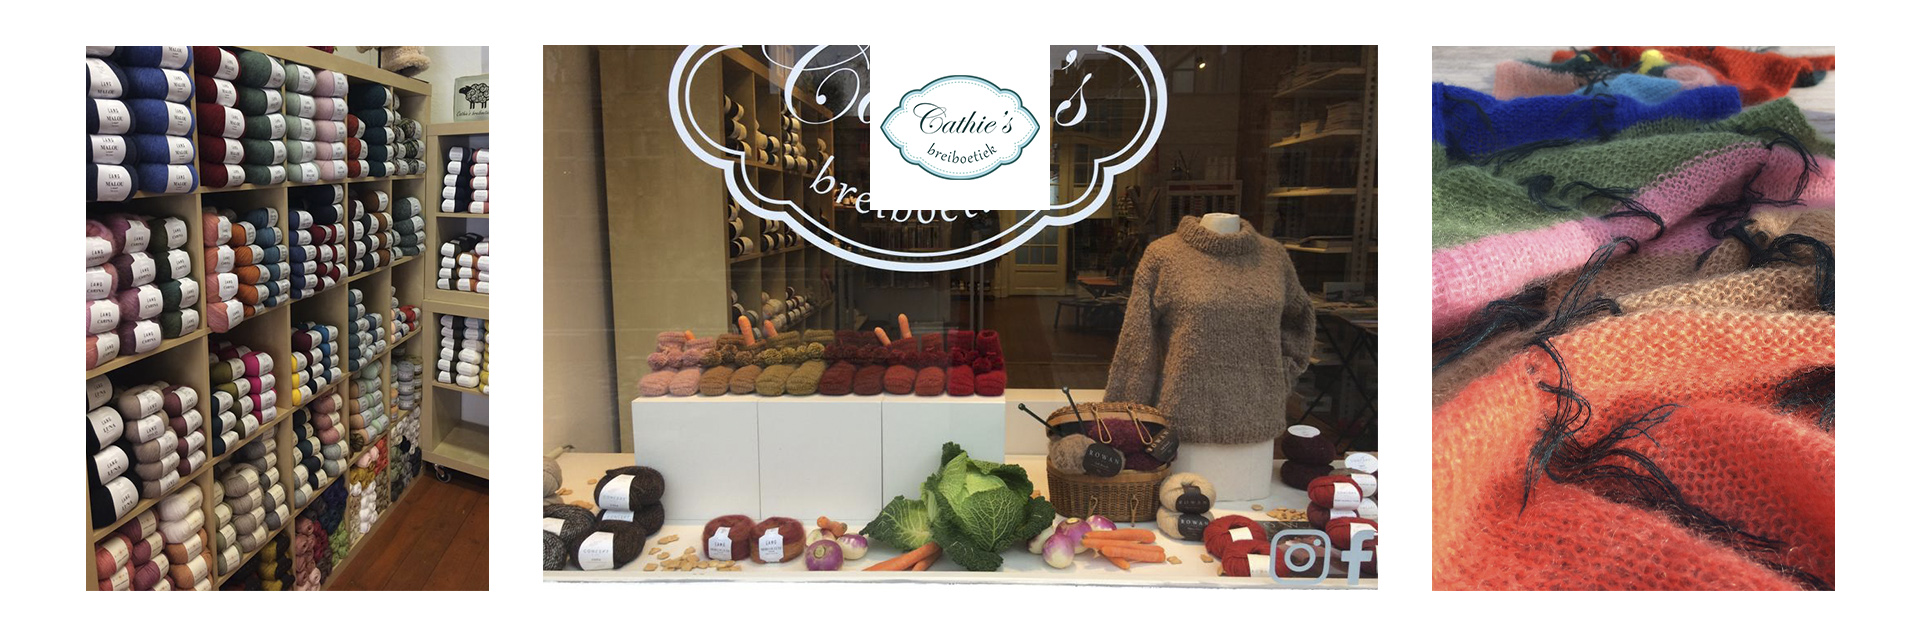 Cathie's Breiboetiek is a very well known luxury knitting boutique in Bruges and famous for outstanding quality and a perfect service. Here you will find an extensive product range of the finest wool, yarn, accessories and all equipment for knitting and crocheting, all of the highest standard in quality. Cathie is a strong believer in bringing people together, inspiring yourself and others, all in the right atmosphere.